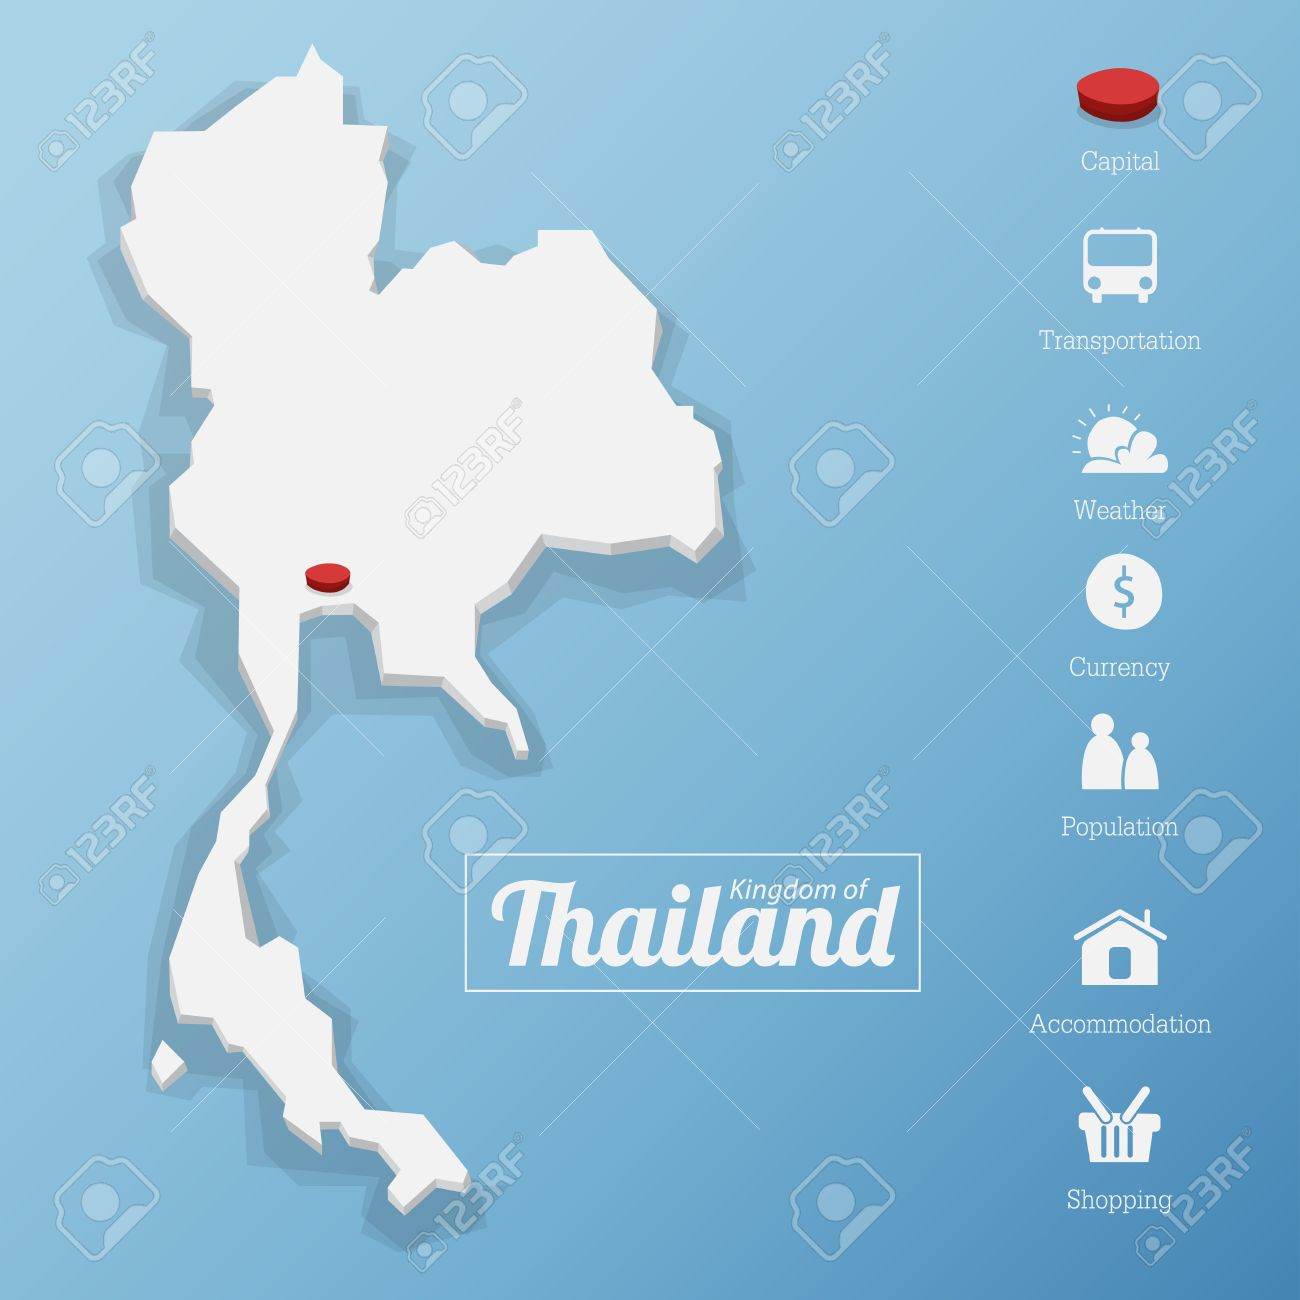 Kingdom of Thailand map. Including tourism icon in flat design for modern infographic, Vector, Illustration - 38530300